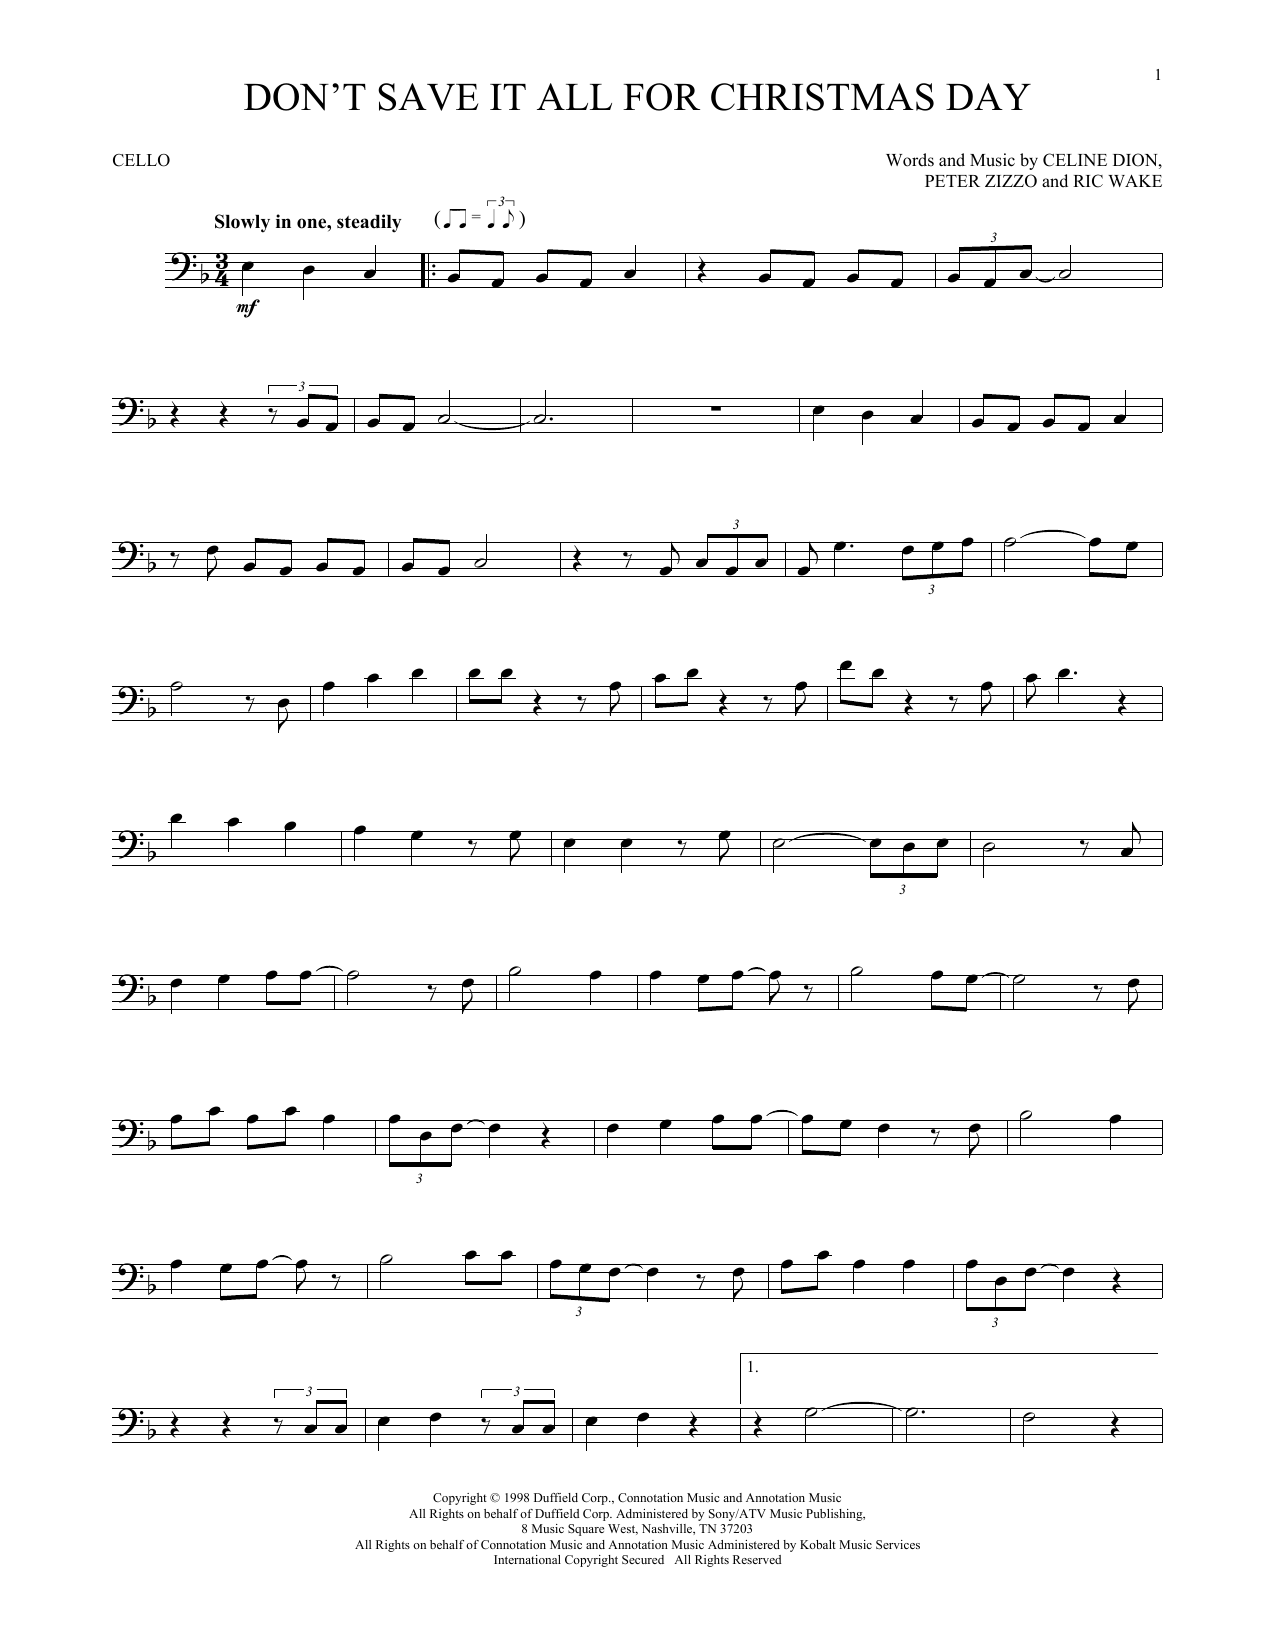 Don't Save It All For Christmas Day (Cello Solo)